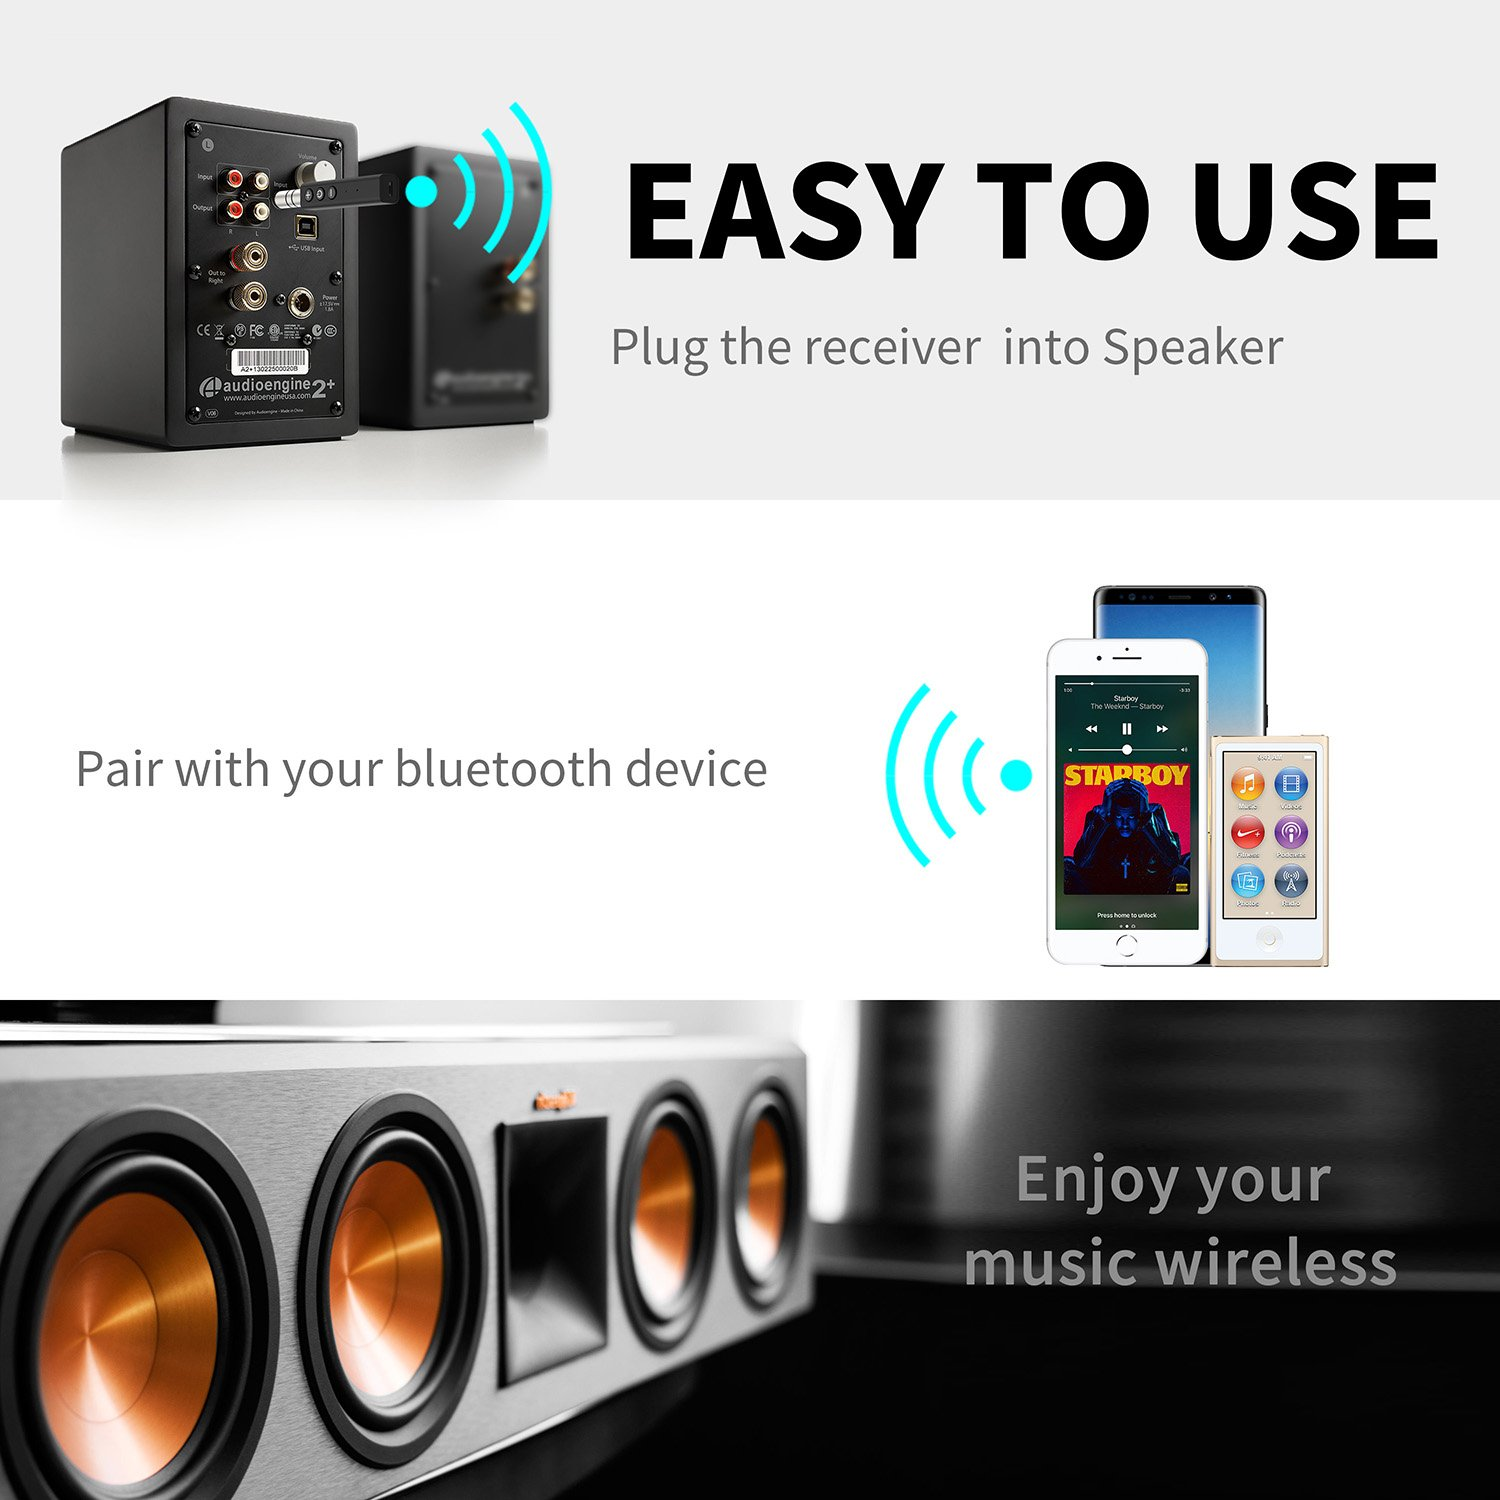 Portable Clip Wireless Audio Adapter 3.5mm Aux Stereo Output for Home//Car Audio Music Streaming System Voice Assistant, A2DP, Built-in Microphone SZMDLX Bluetooth 5.0 Receiver//Bluetooth Car Kit